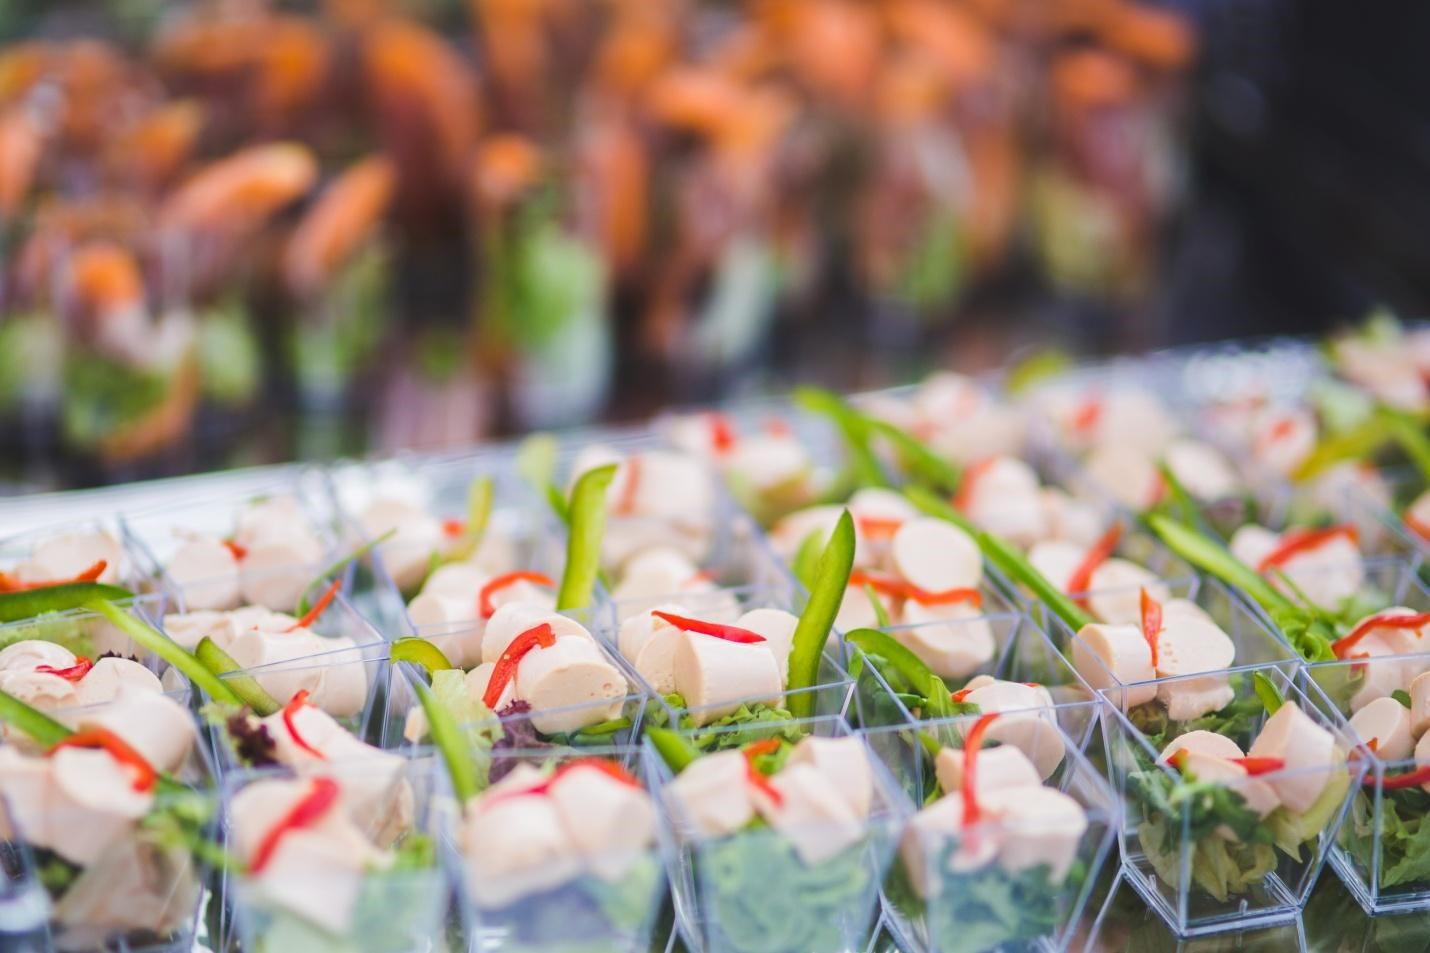 Catering expo was launched in an International Convention Centre Wales